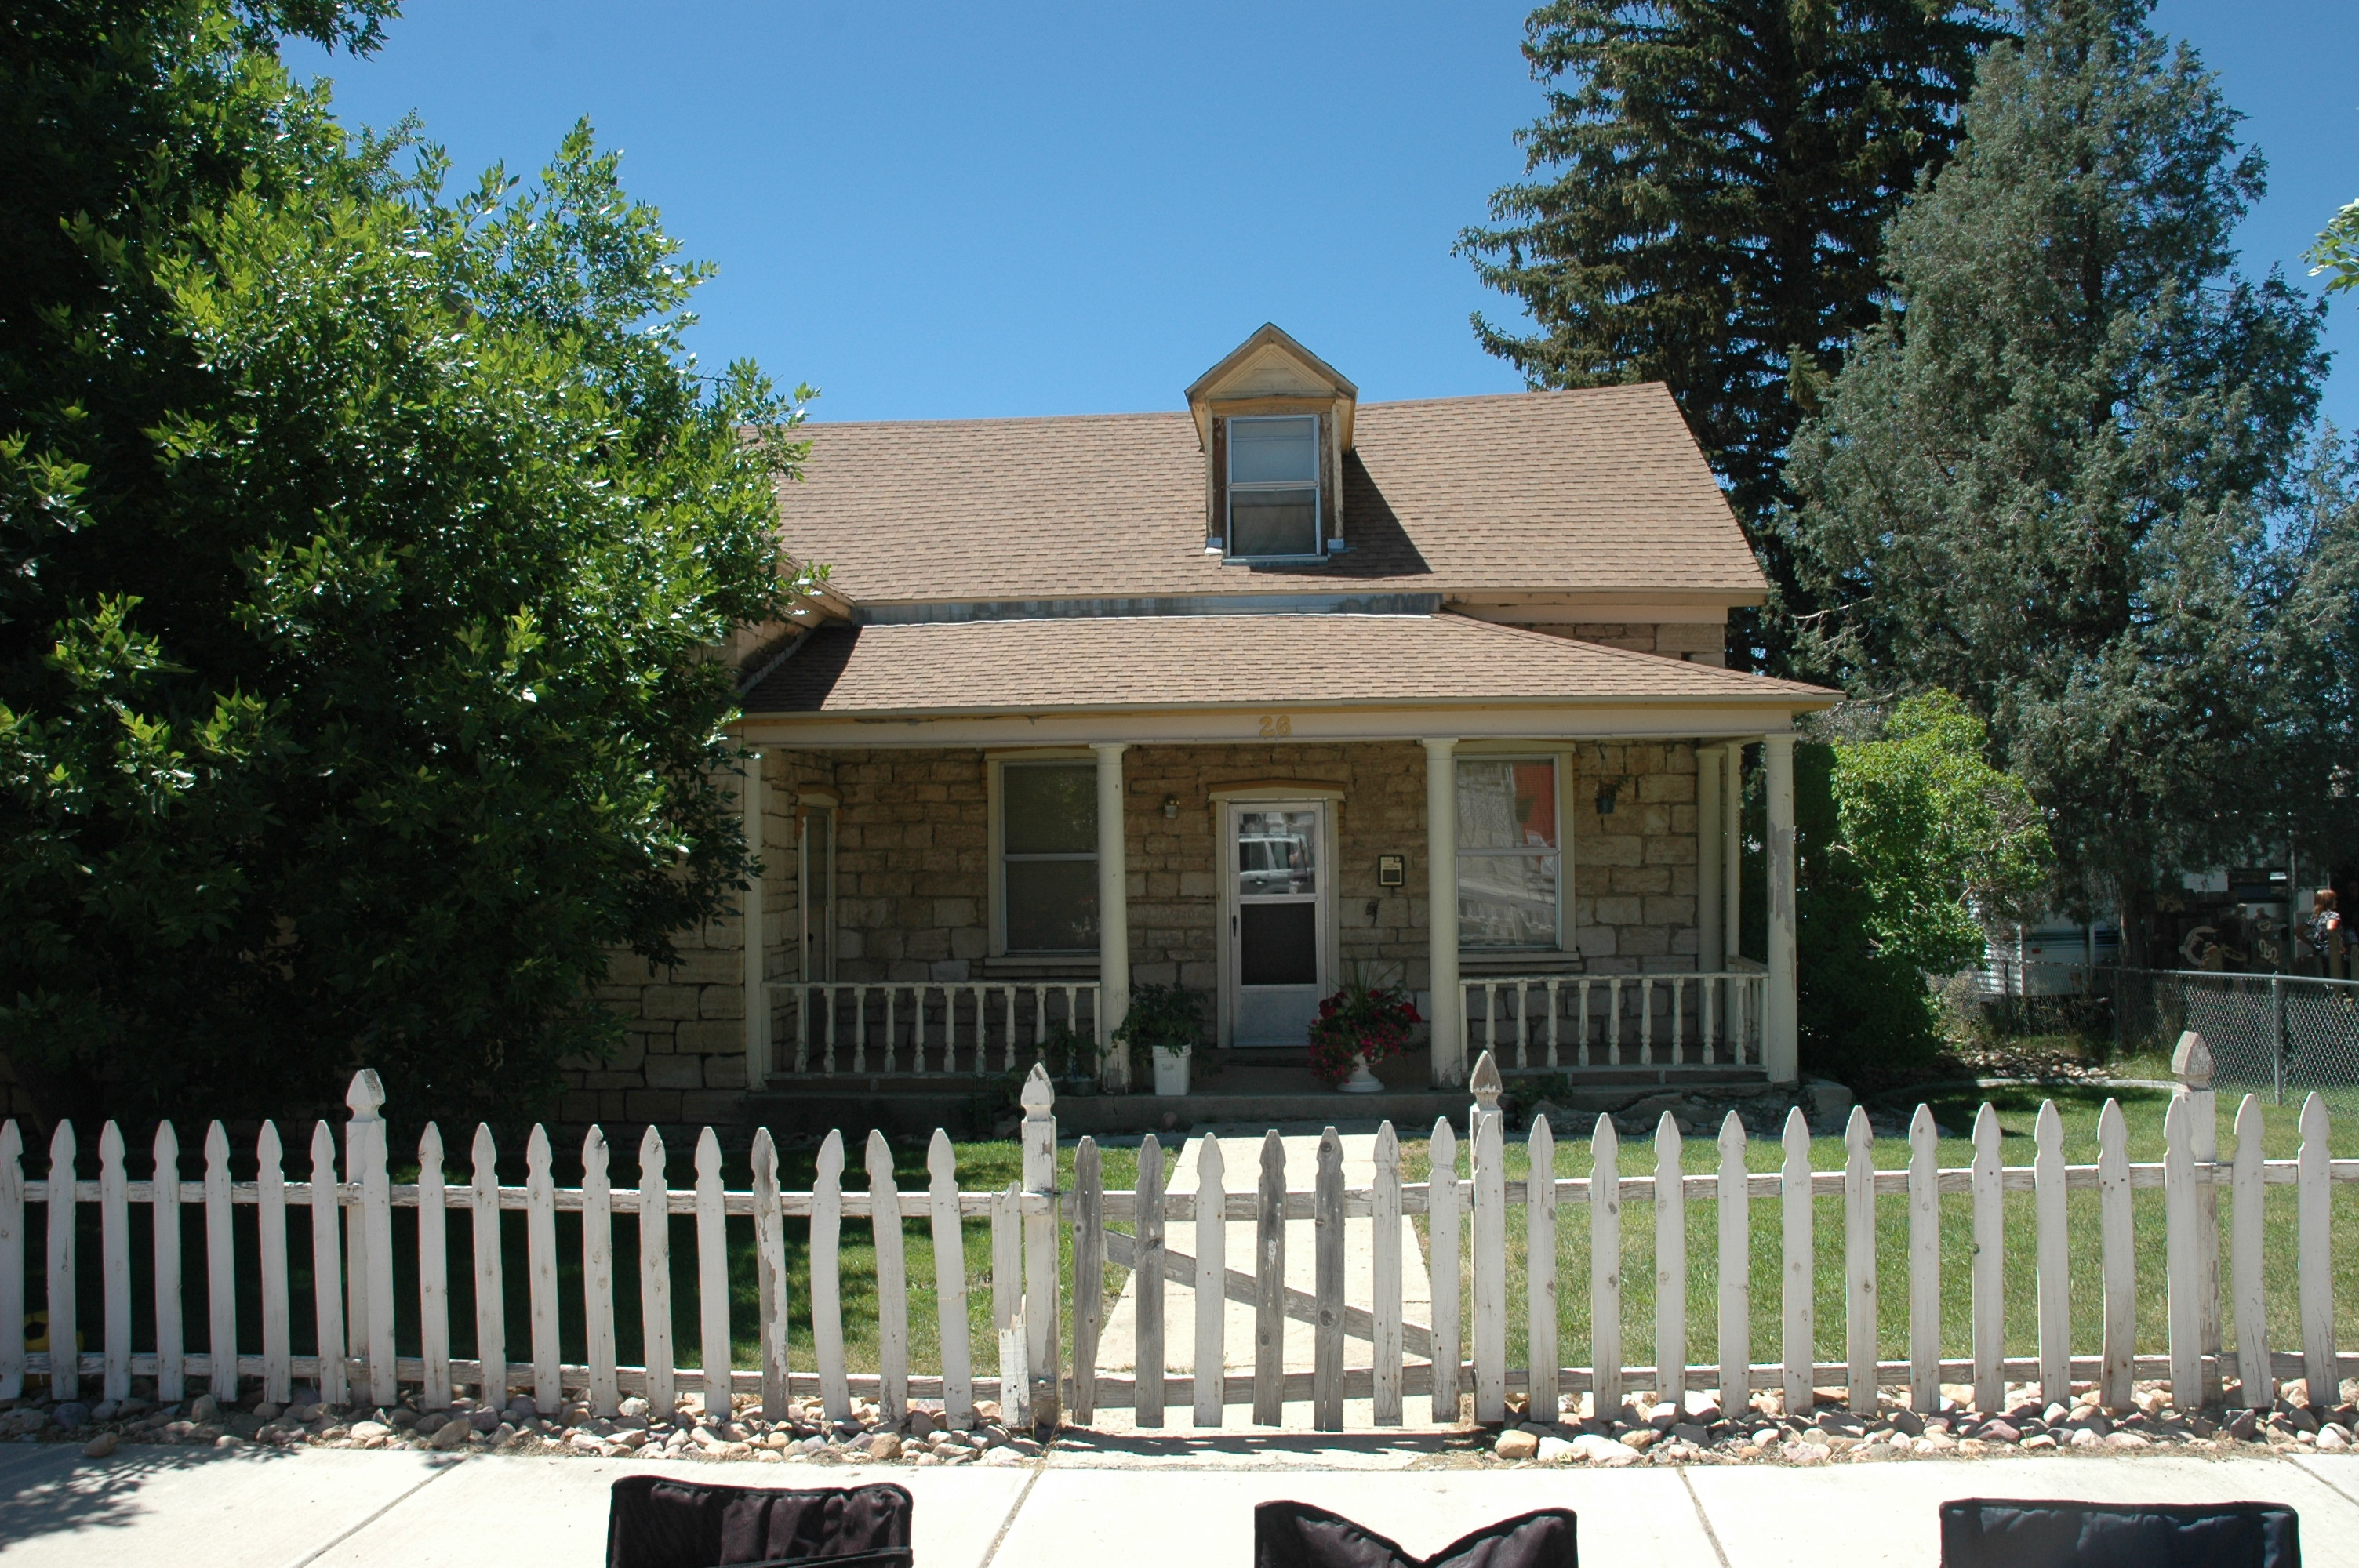 File:Hjort House Fairview Utah jpeg - Wikimedia Commons